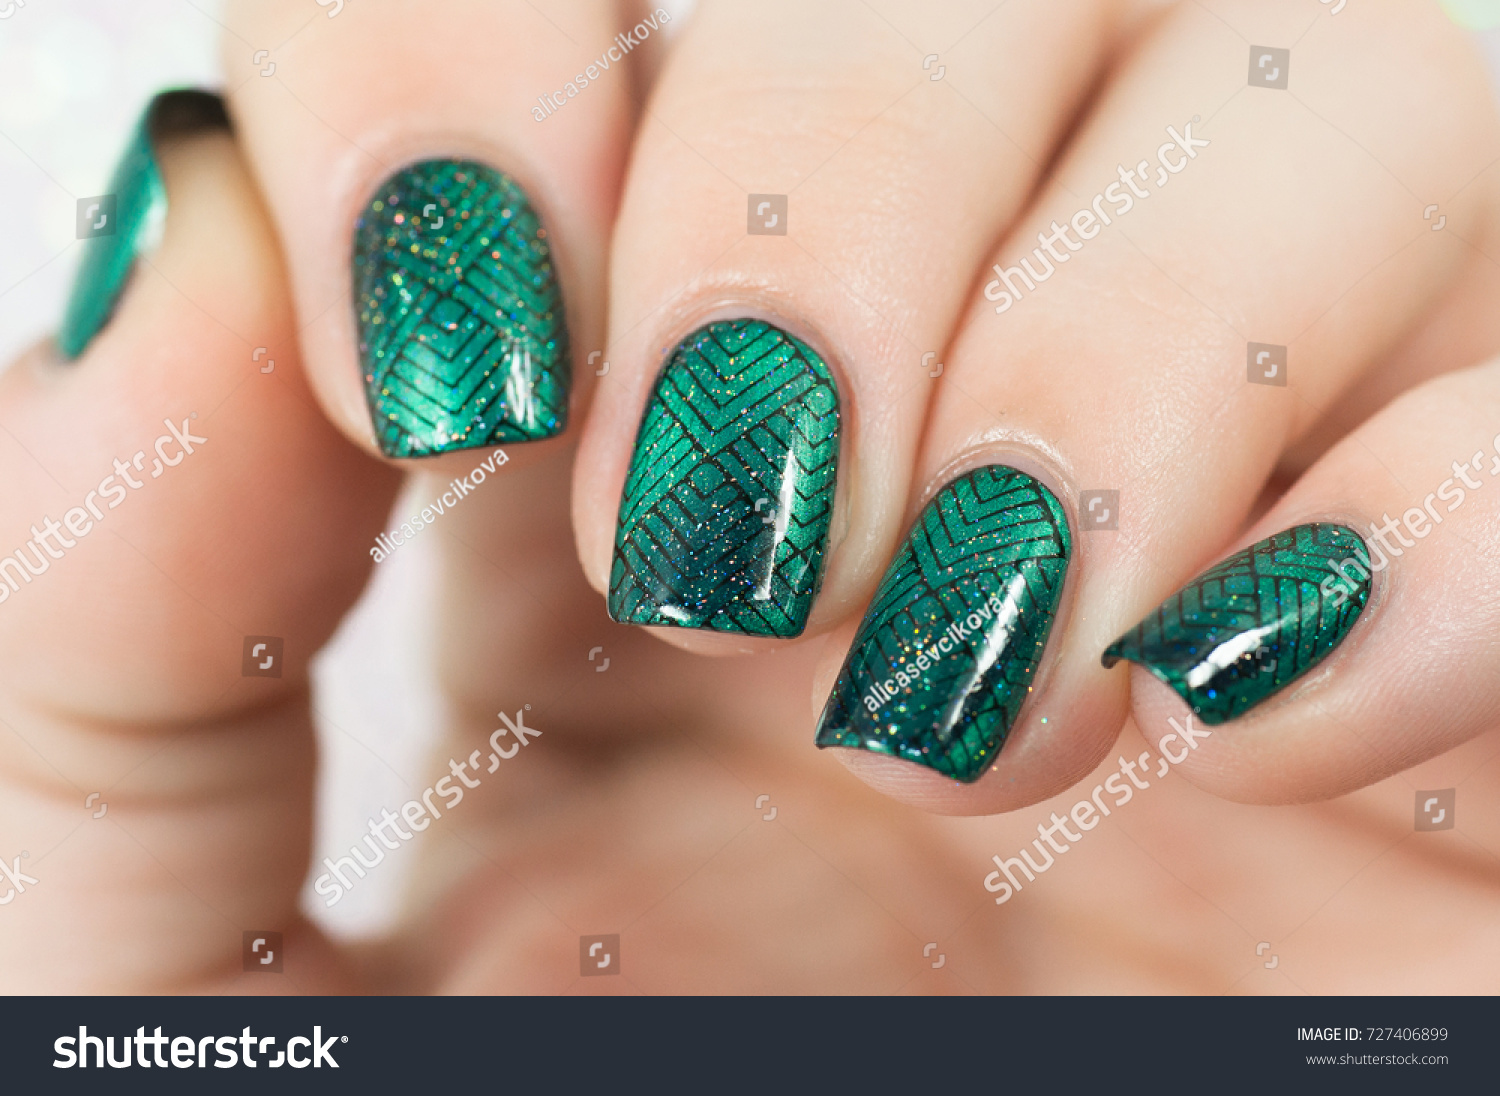 Nails Green Cateye Nail Polish Black Stock Photo (Royalty Free ...